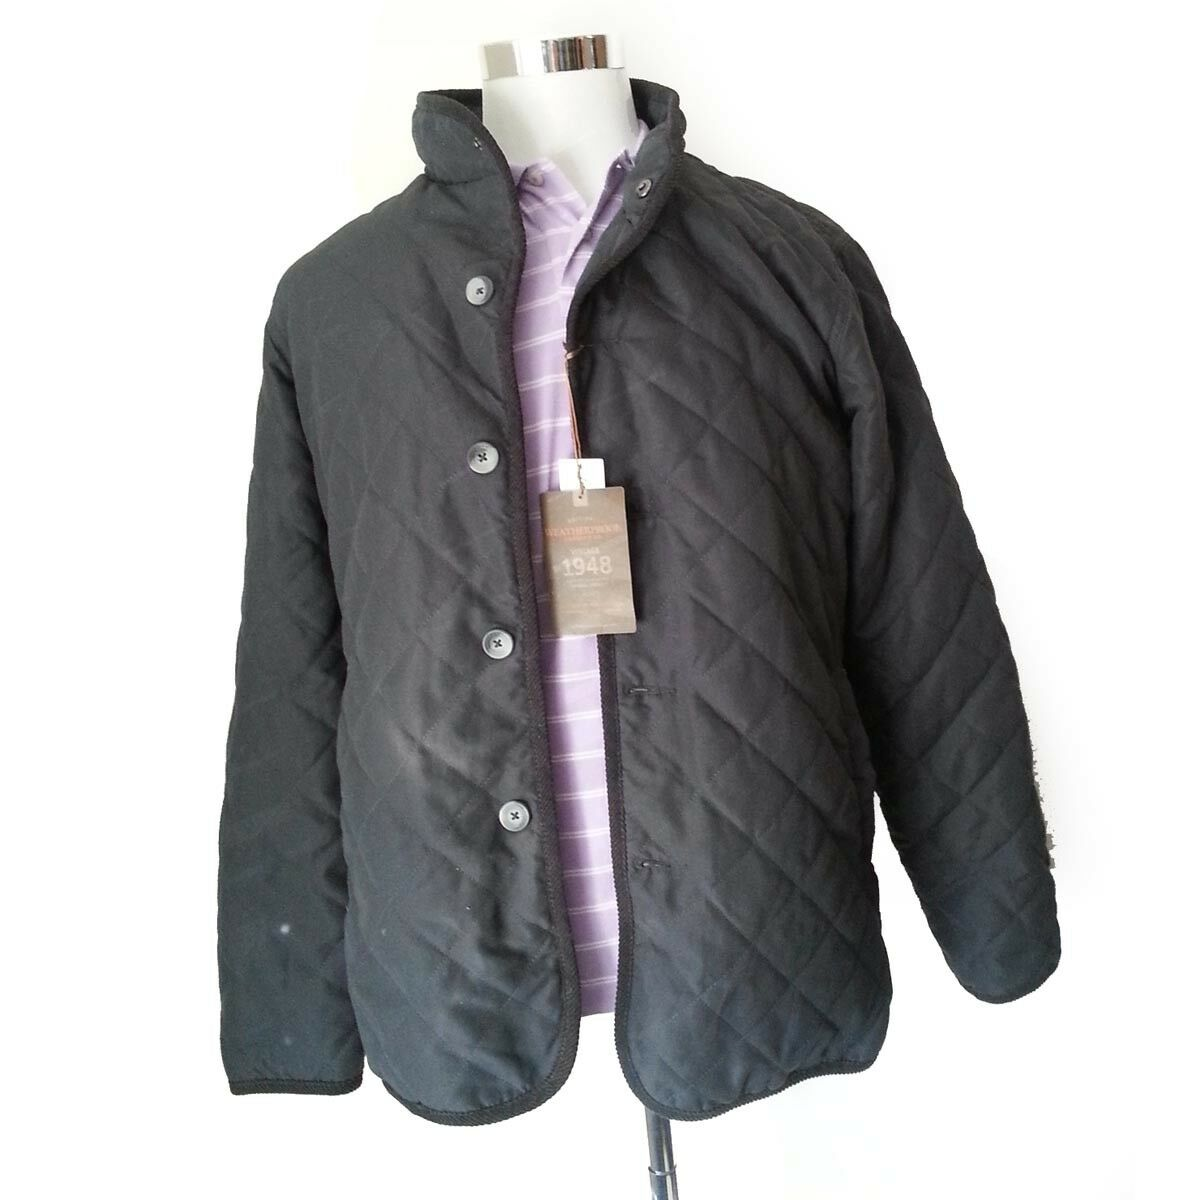 Sale $38.25 https://ebay.to/2KCDYUG  Weatherproof Men Quilted #jacket Size M pic.twitter.com/OpmDlNsYZH